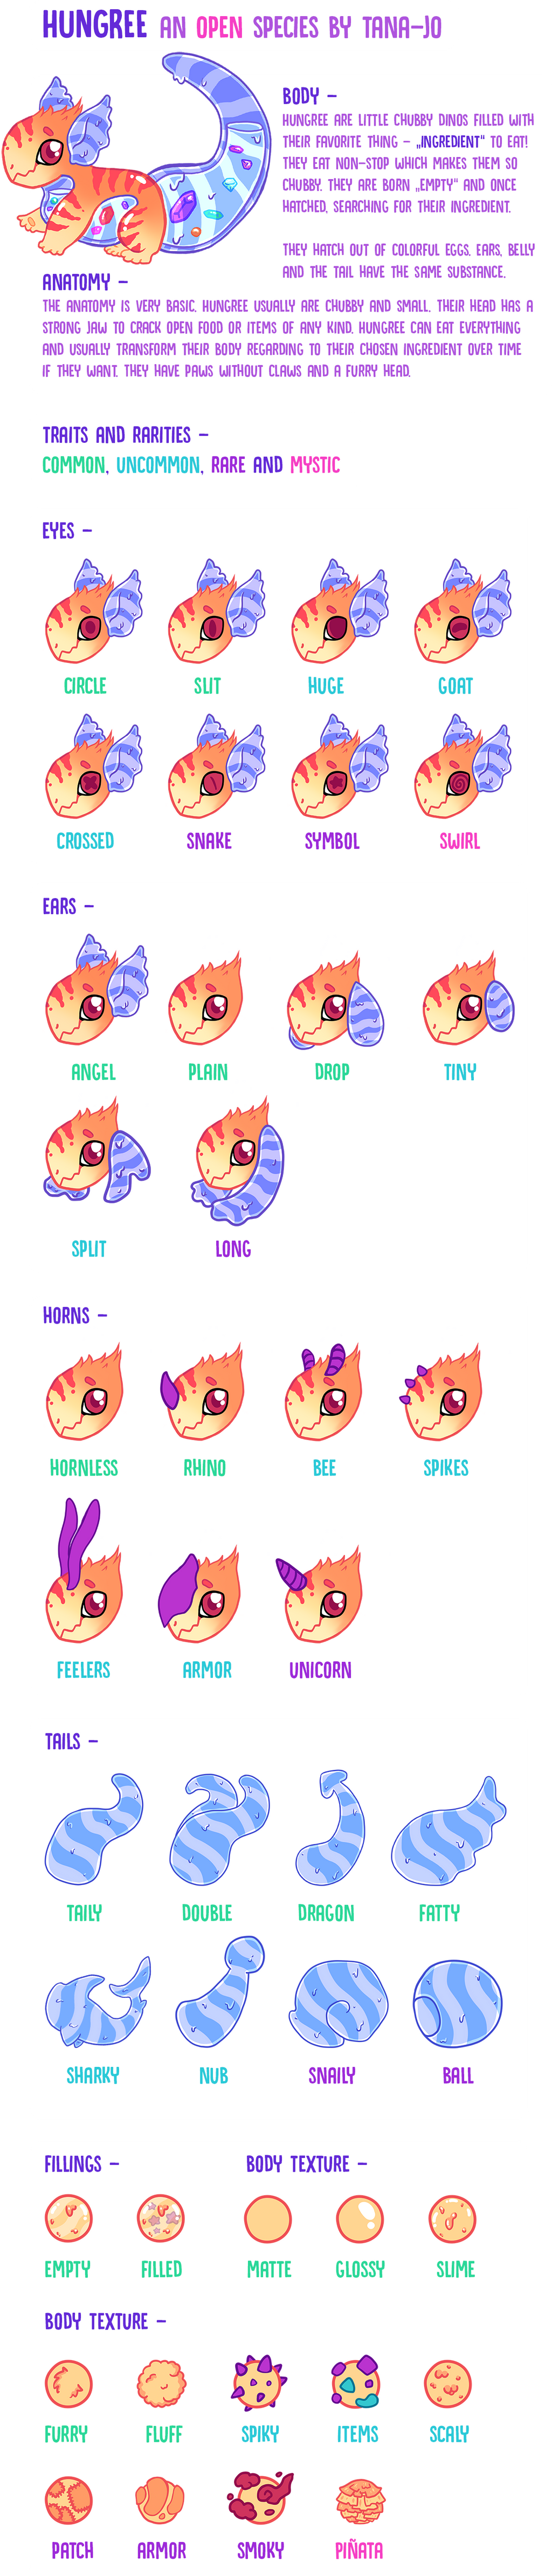 Hungree OPEN Species Sheet